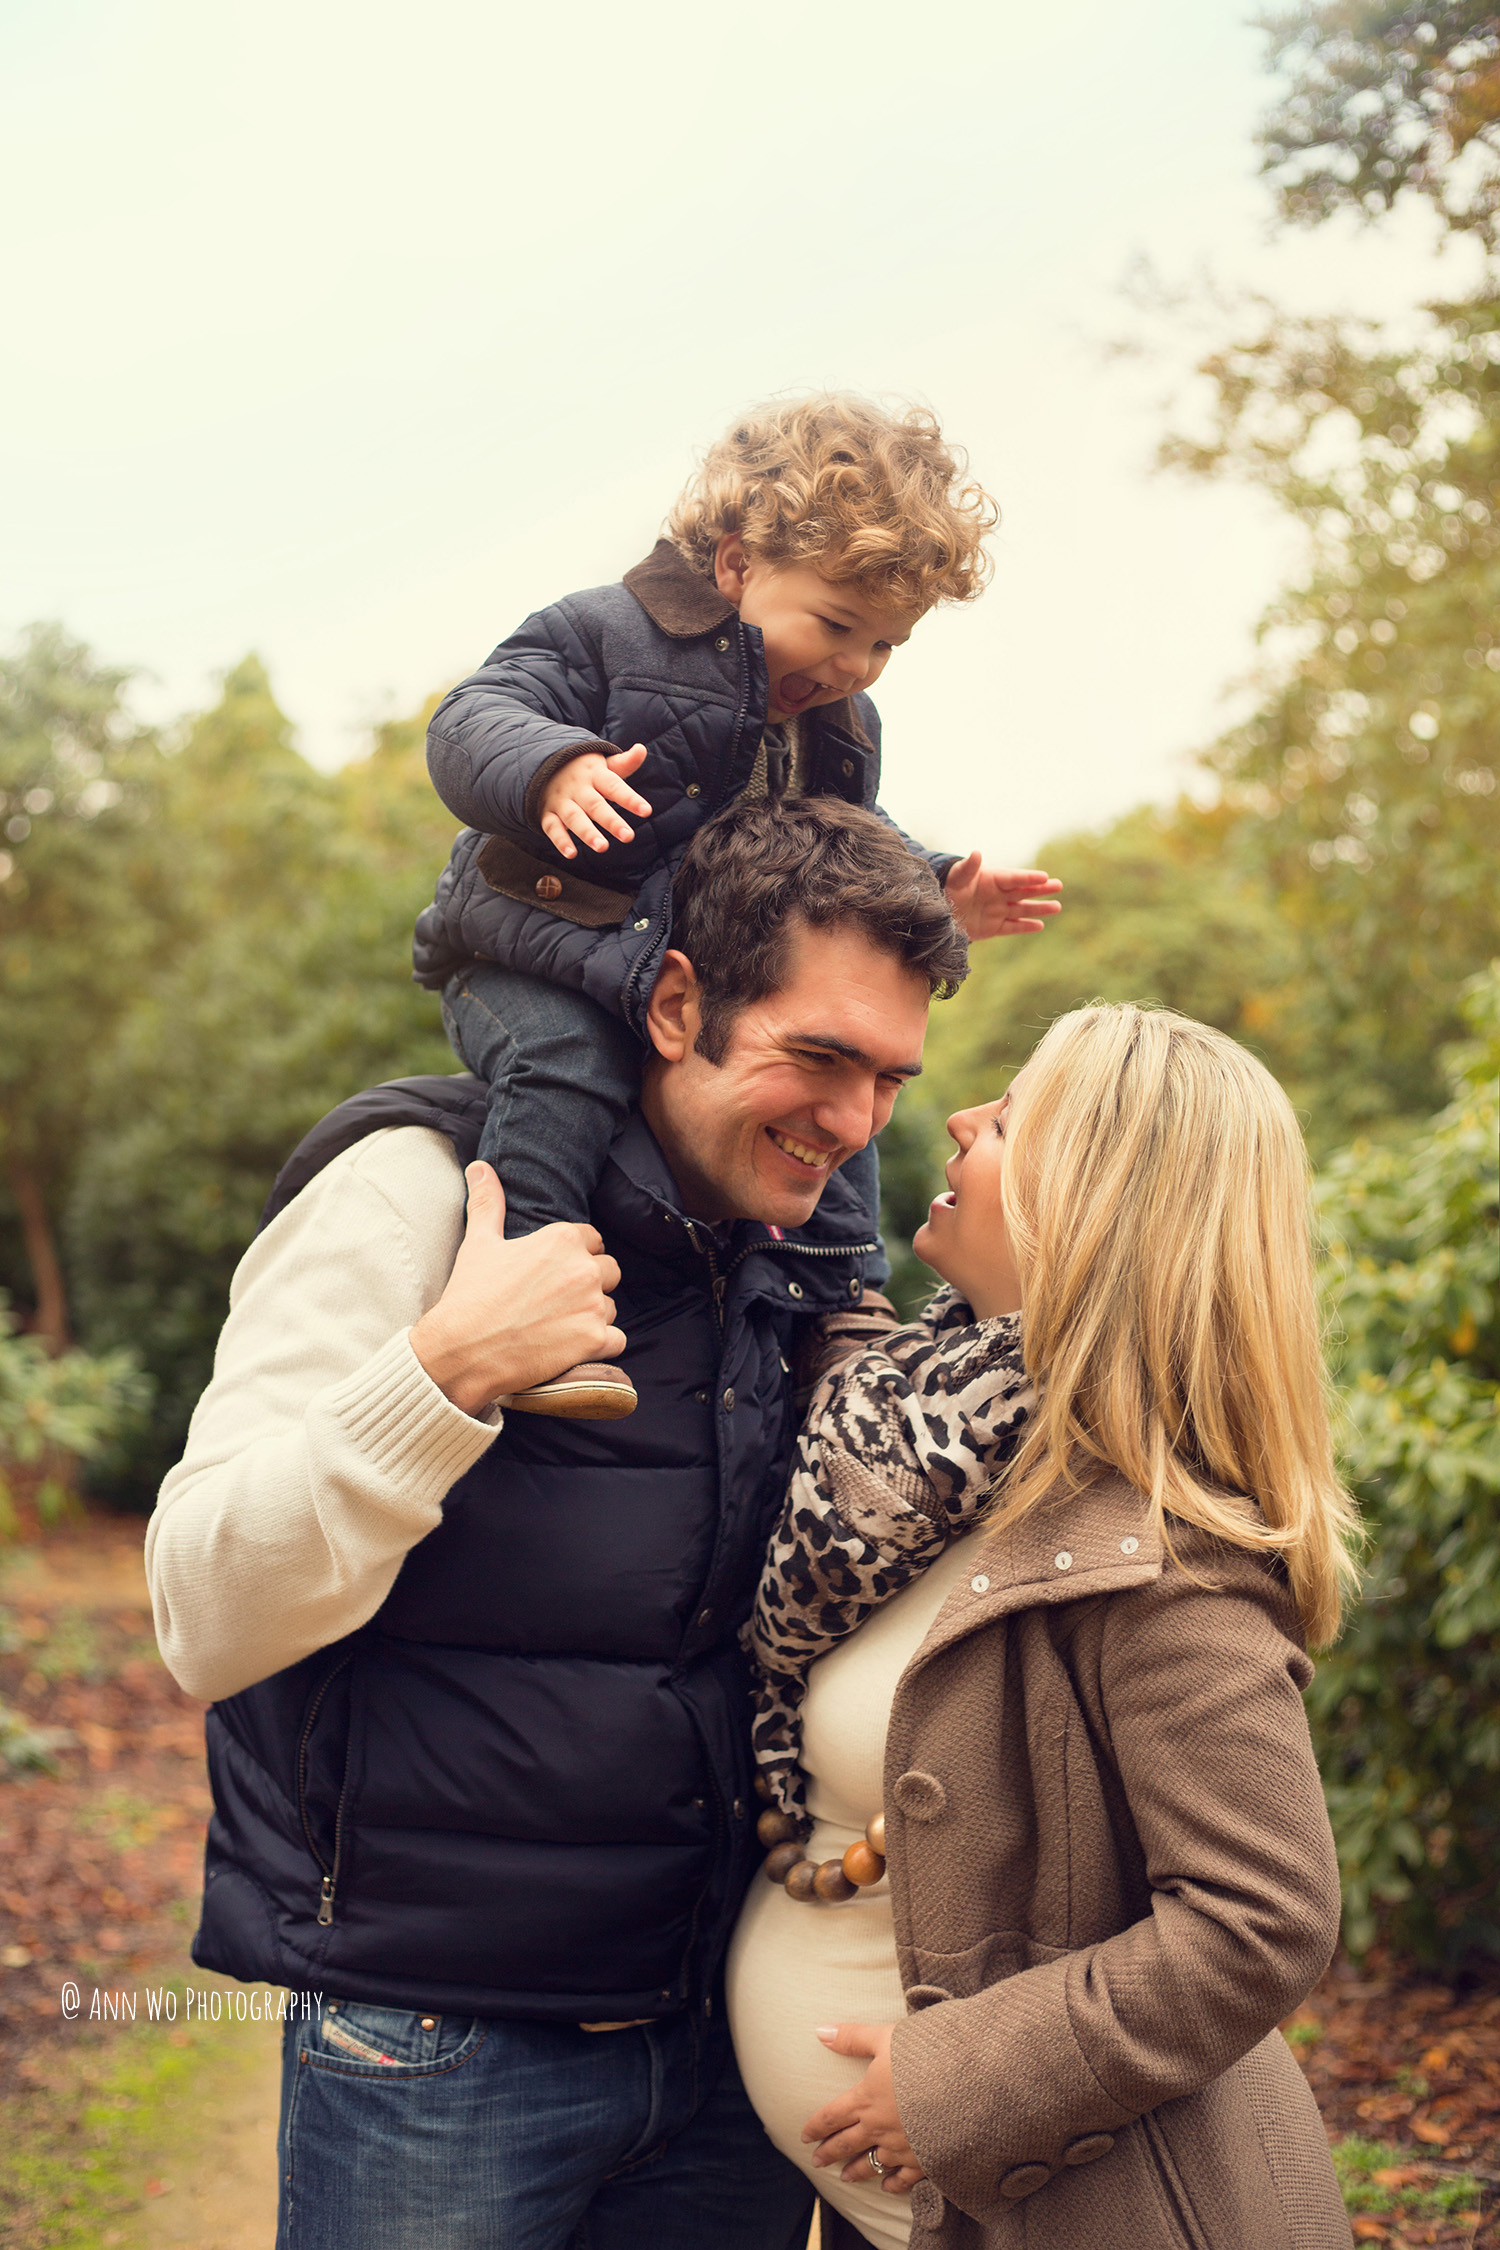 ann-wo-baby-photographer-windsor-berkshire-outdoor-family-photo-session1.jpg